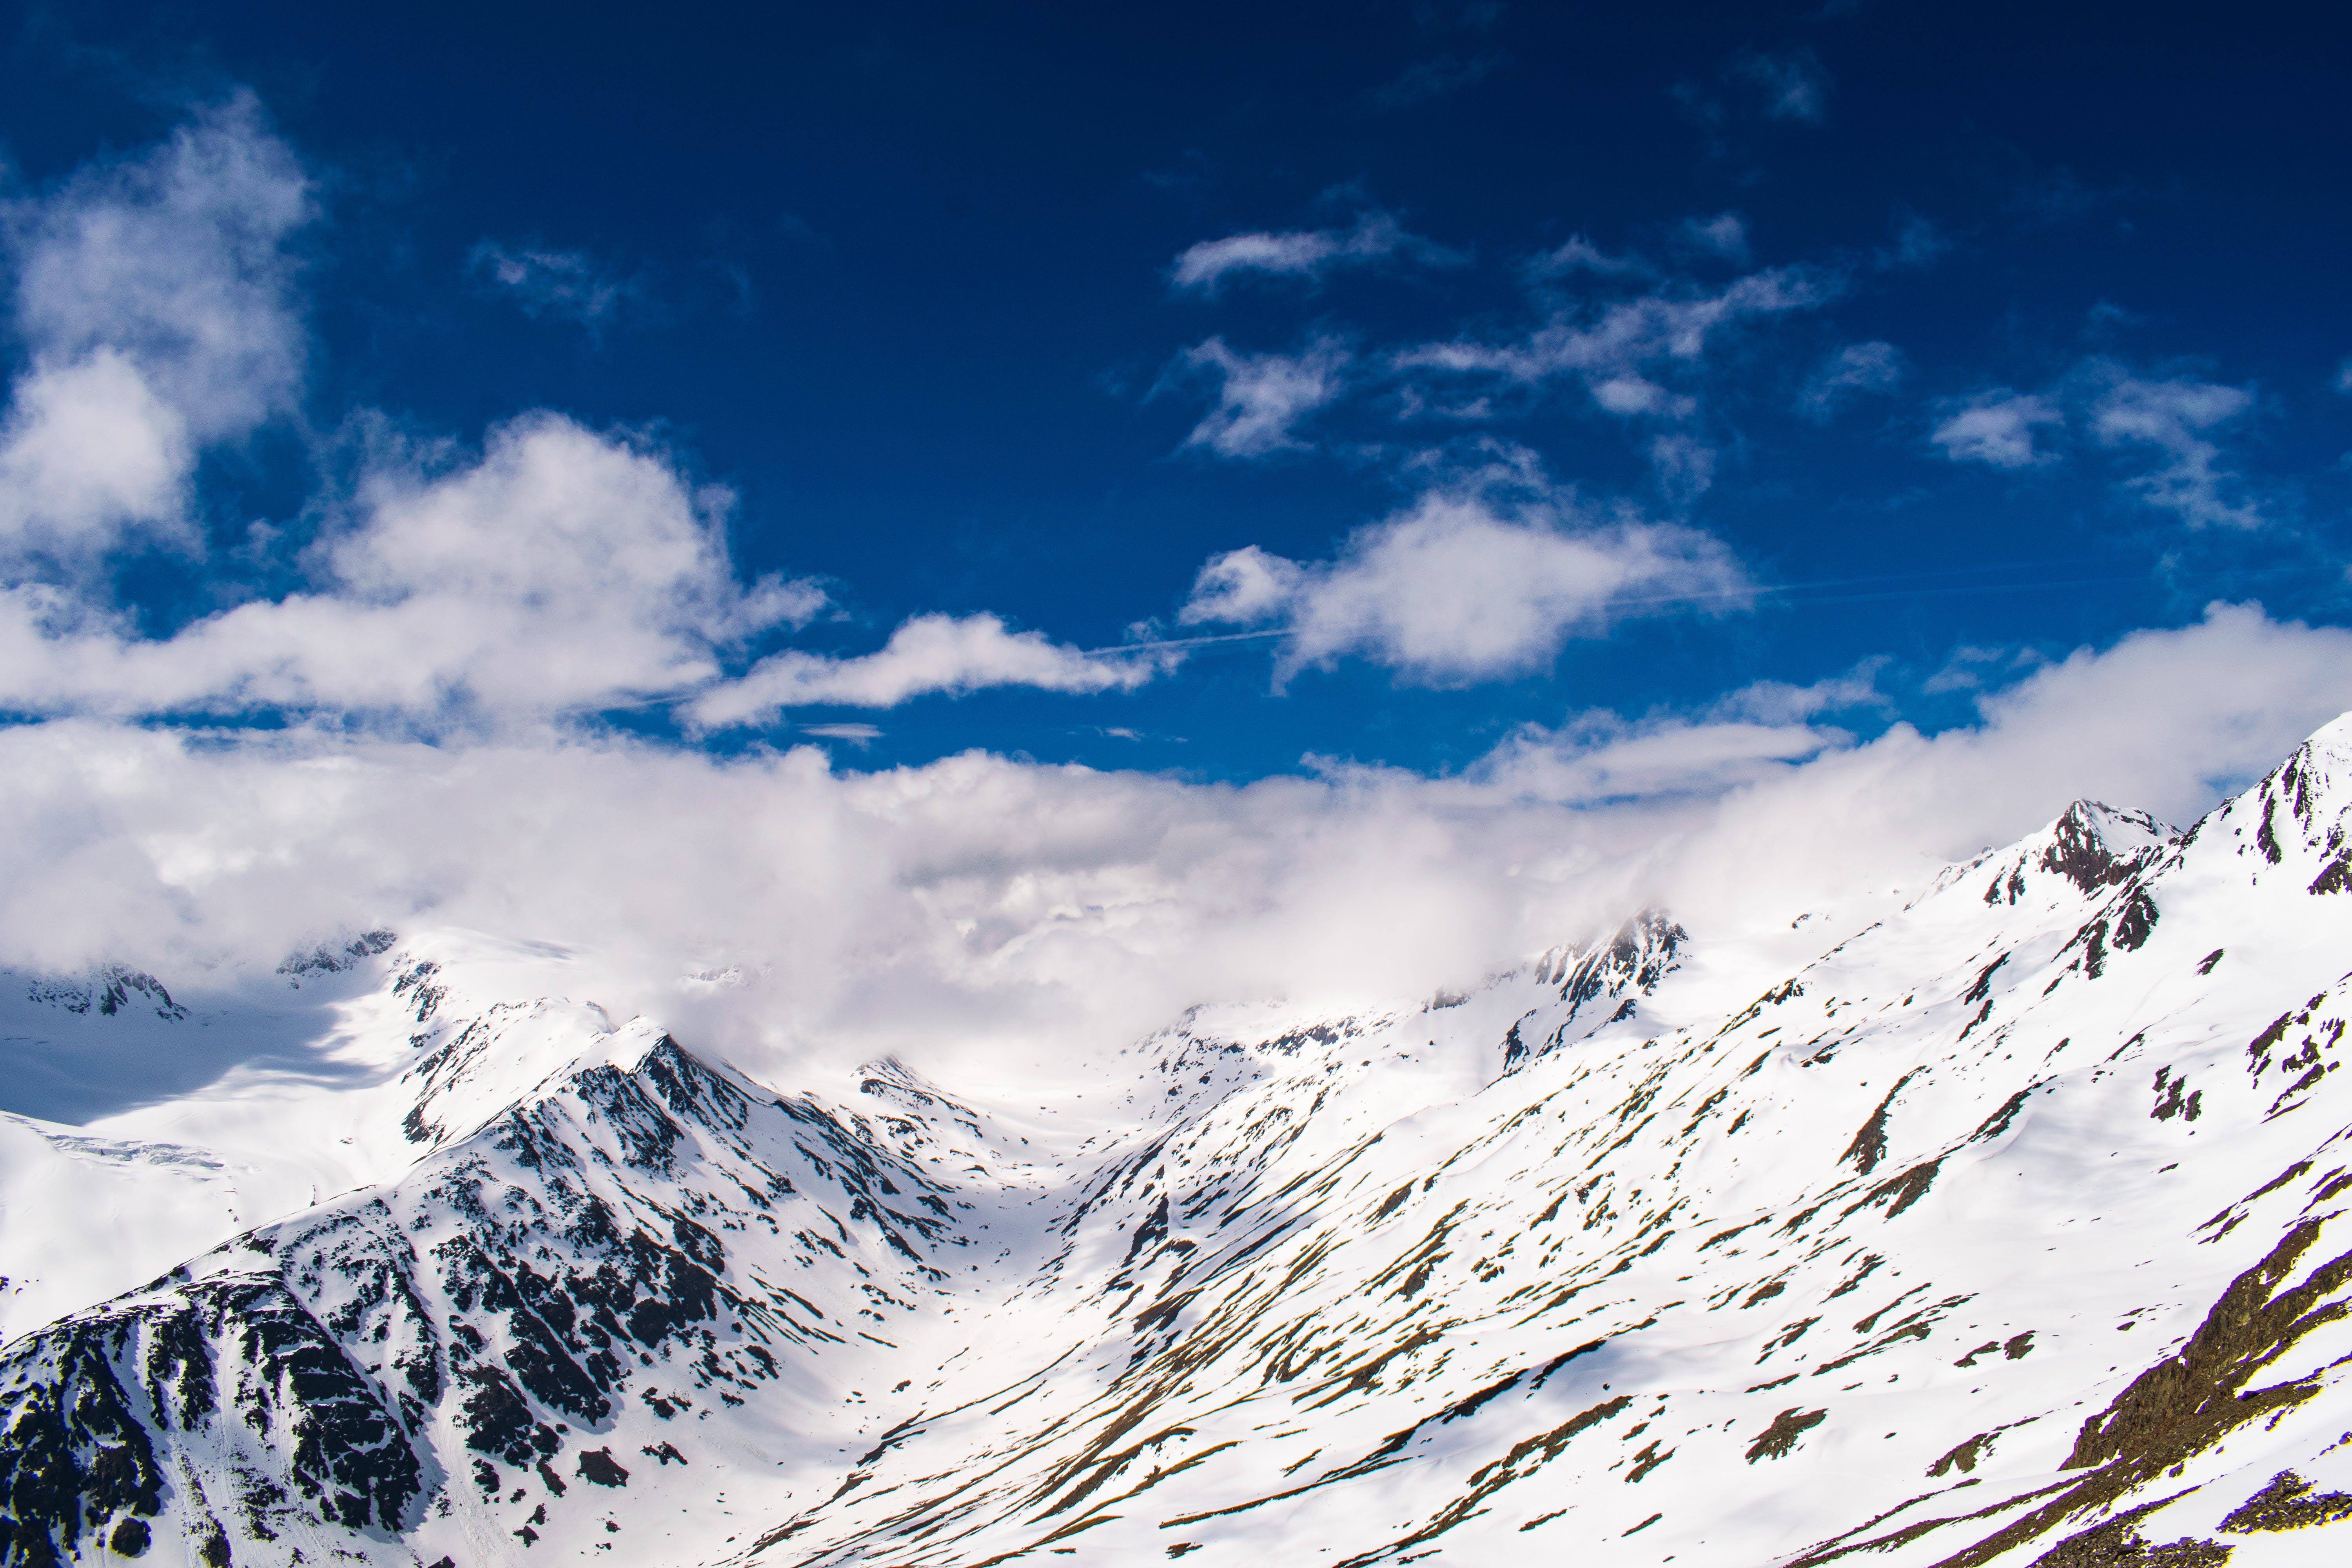 Snowy Mountain With White Clouds